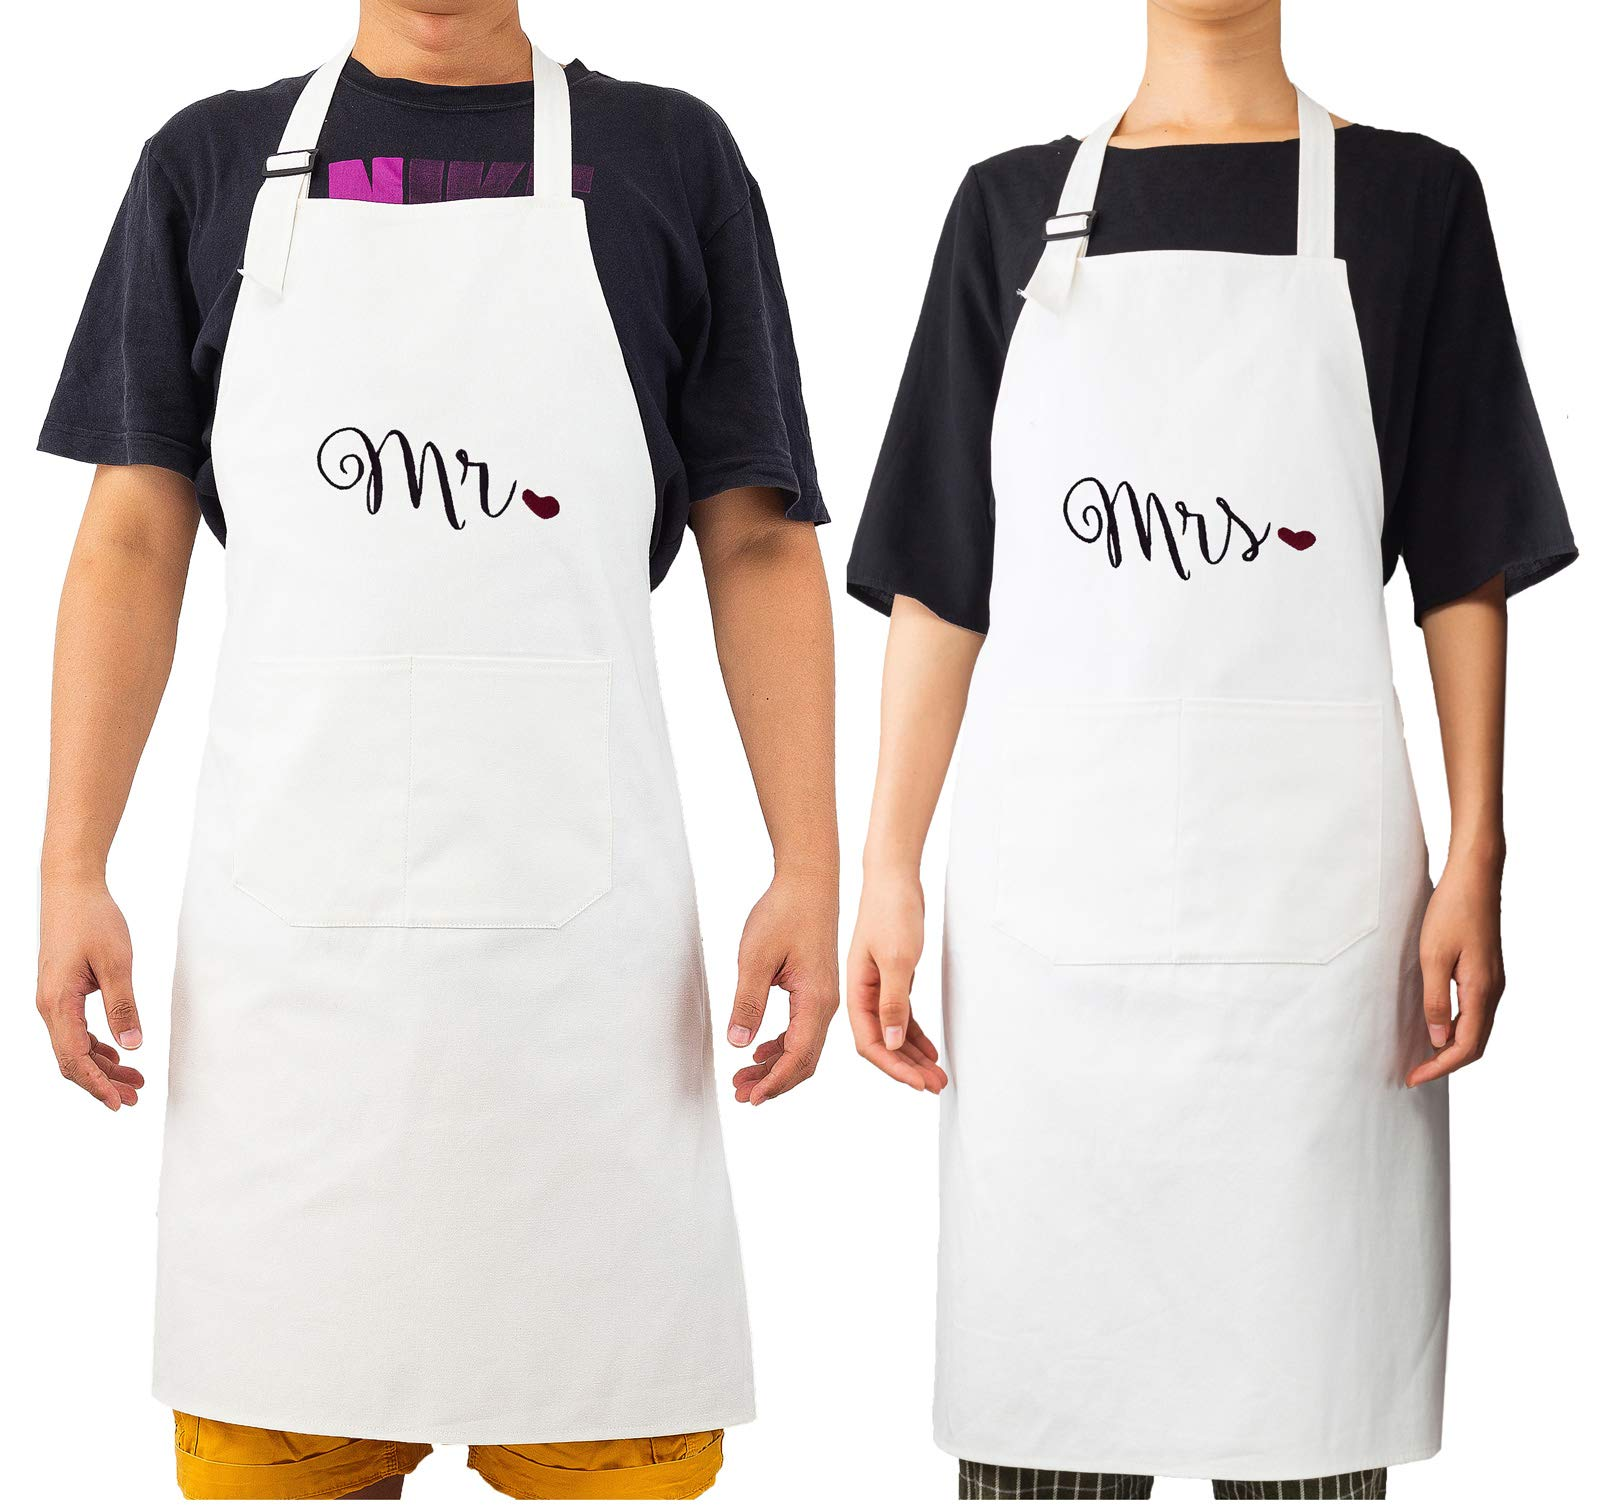 fun_idea Mr. and Mrs. Funny Embroidered Bib Apron Personalized Present Gift for Couples Wedding, Anniversary, Newlywed His & Hers Cooking Chef Apron (Heart)